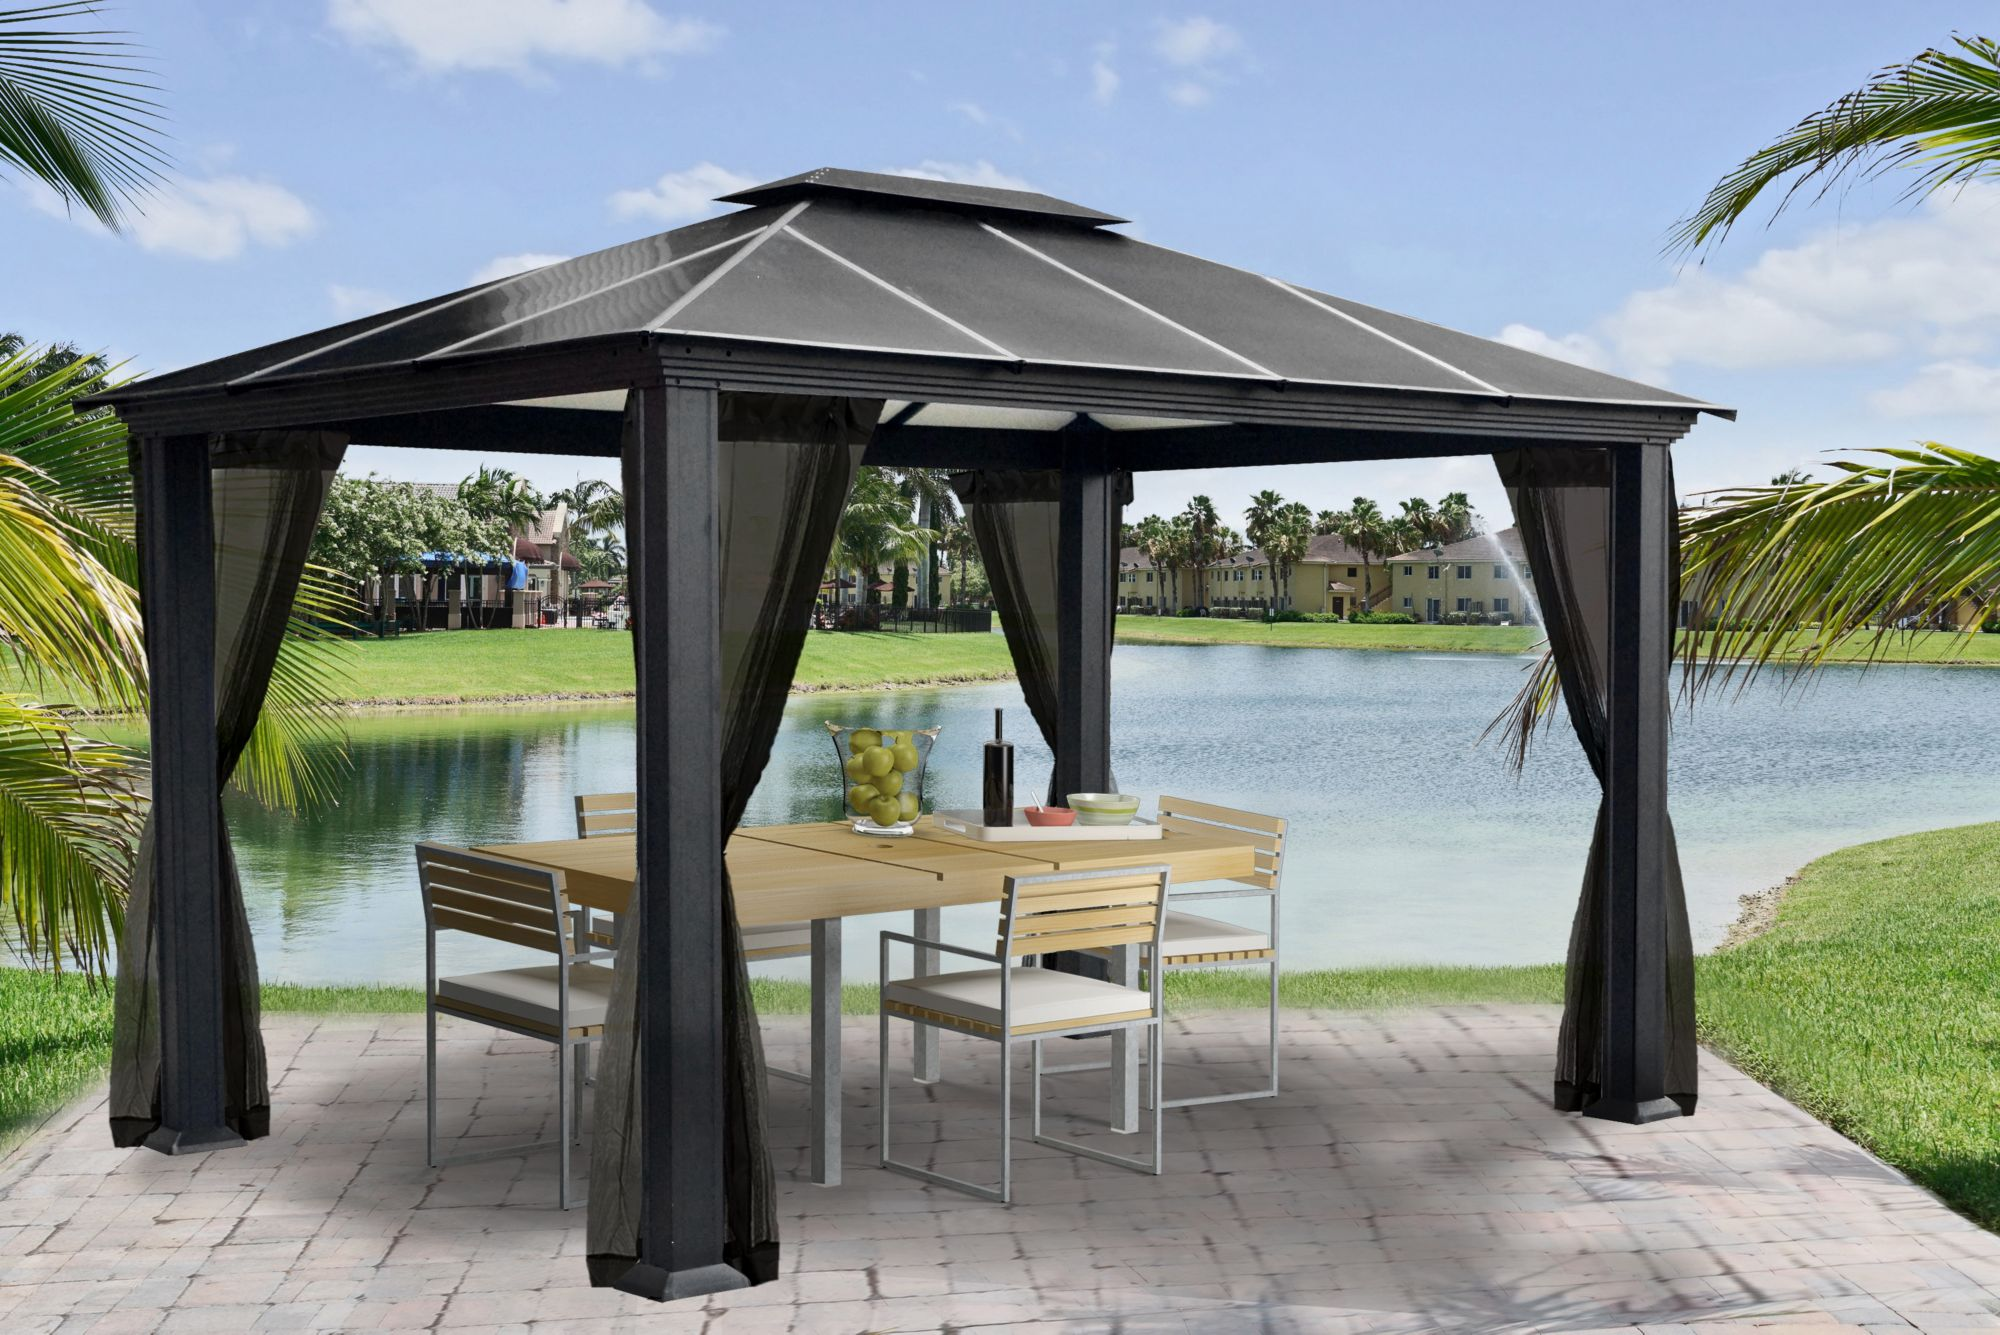 Paragon Outdoor Paragon Outdoor Santa Ana 11 X 13 Gazebo With Mosquito Net From Bj S Wholesale Club Daily Mail